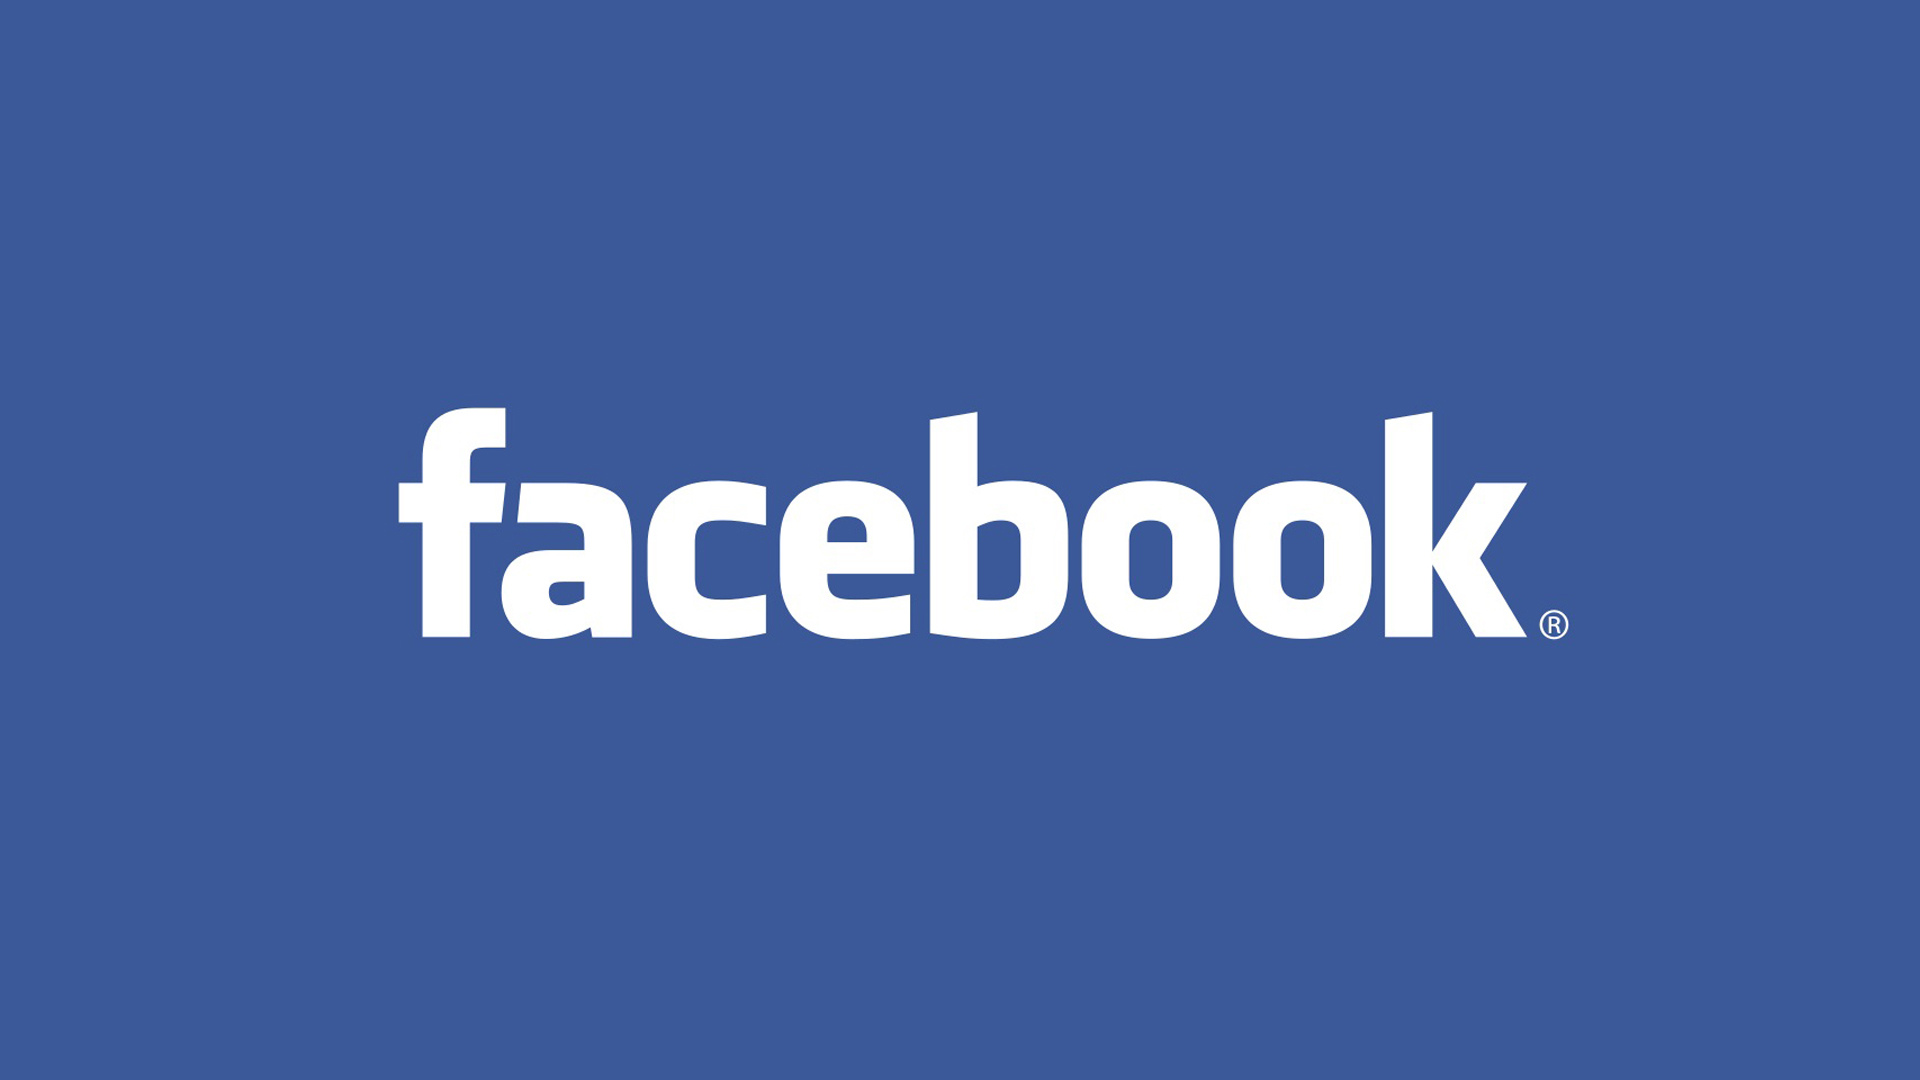 Facebook simplifies cross-posting across its apps